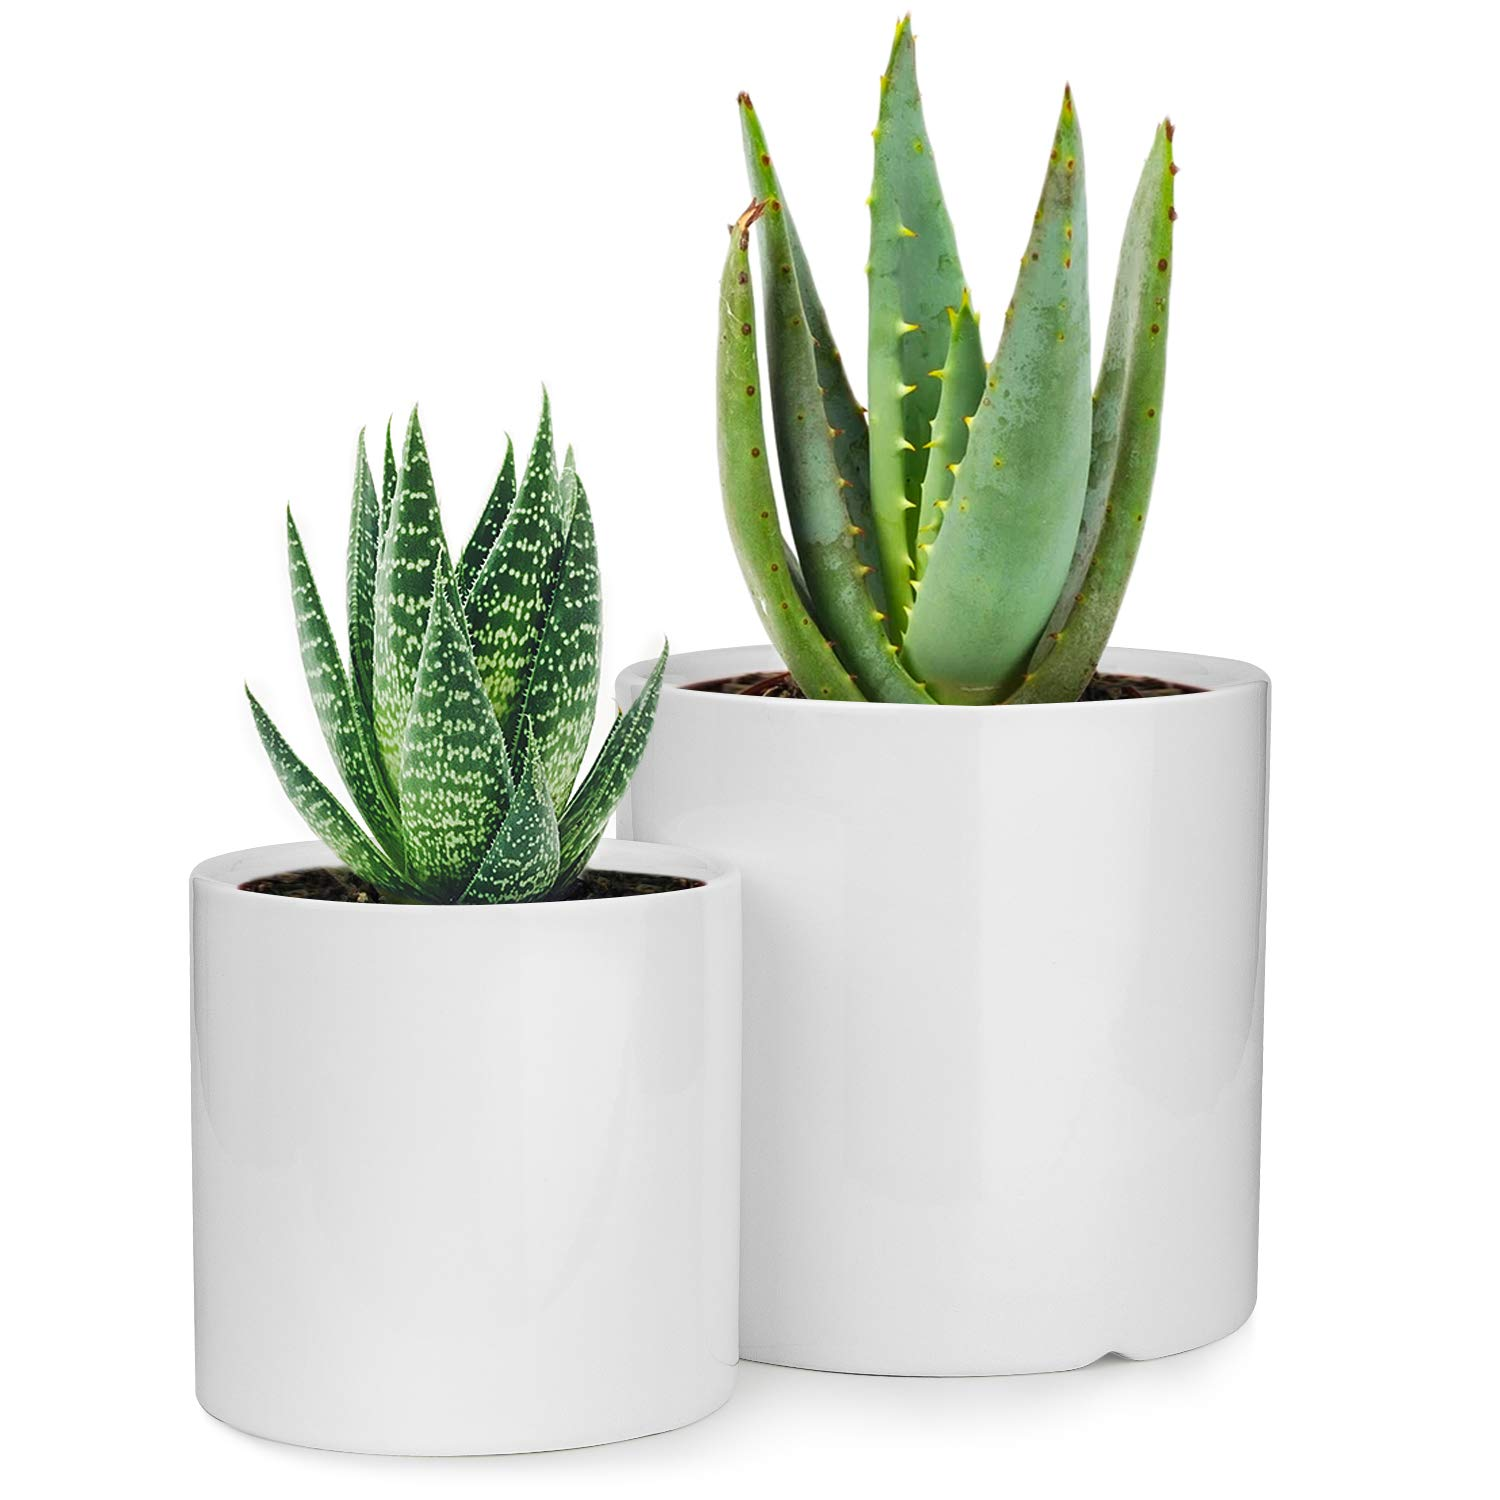 Planters 5.2 4.3 Inch Indoor Set of 2 White Plant Pots Modern Round Flower pots for House Plants, Succulents, Flowers,Herbs